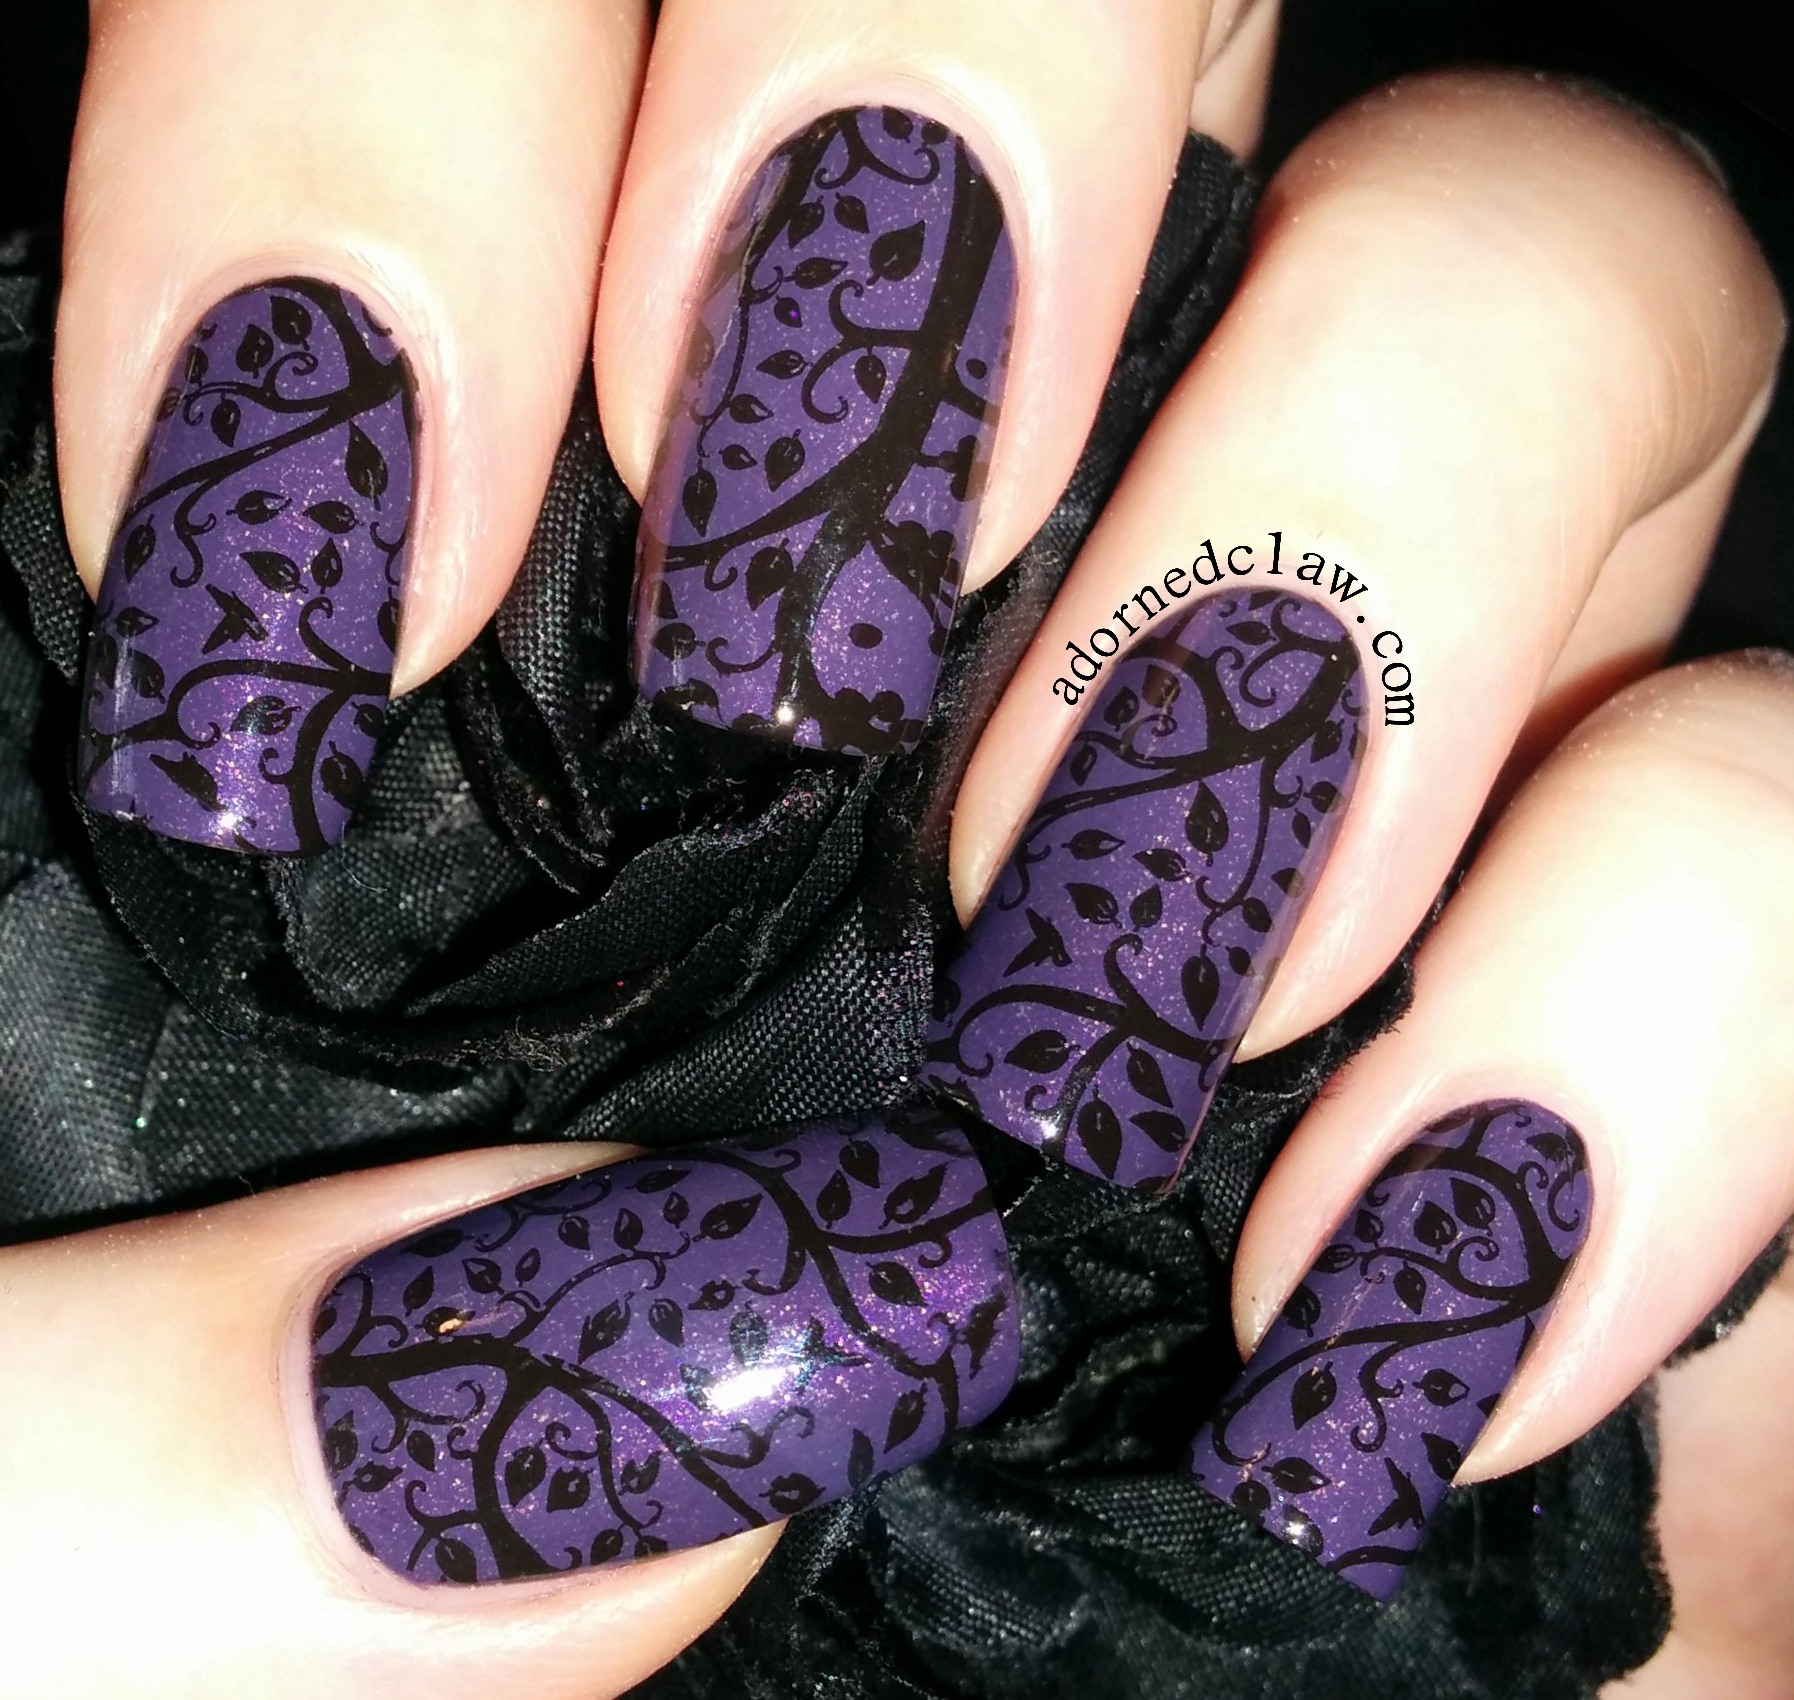 Nails Inc Clifford Street | The Adorned Claw